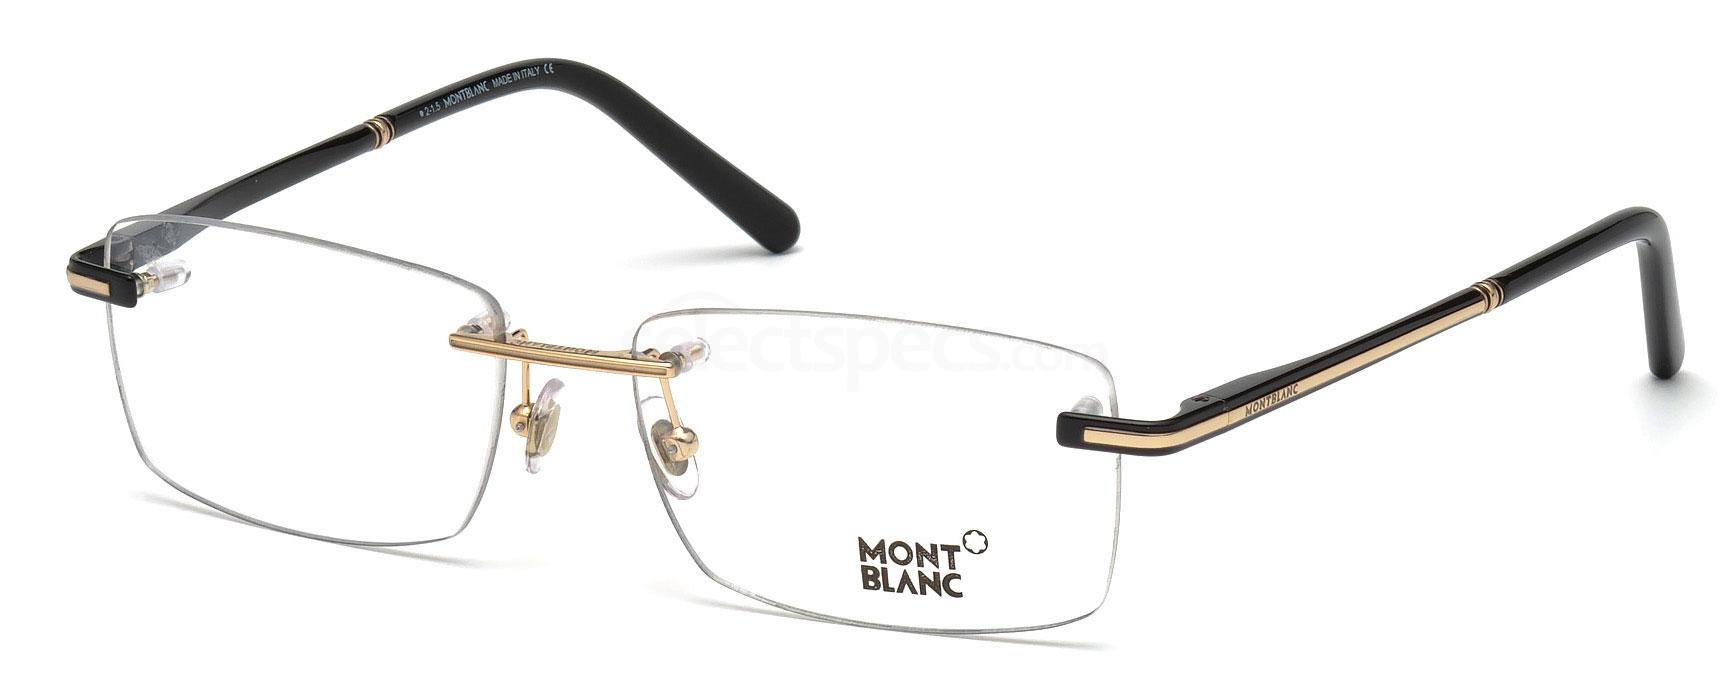 001 MB0577 Glasses, Mont Blanc